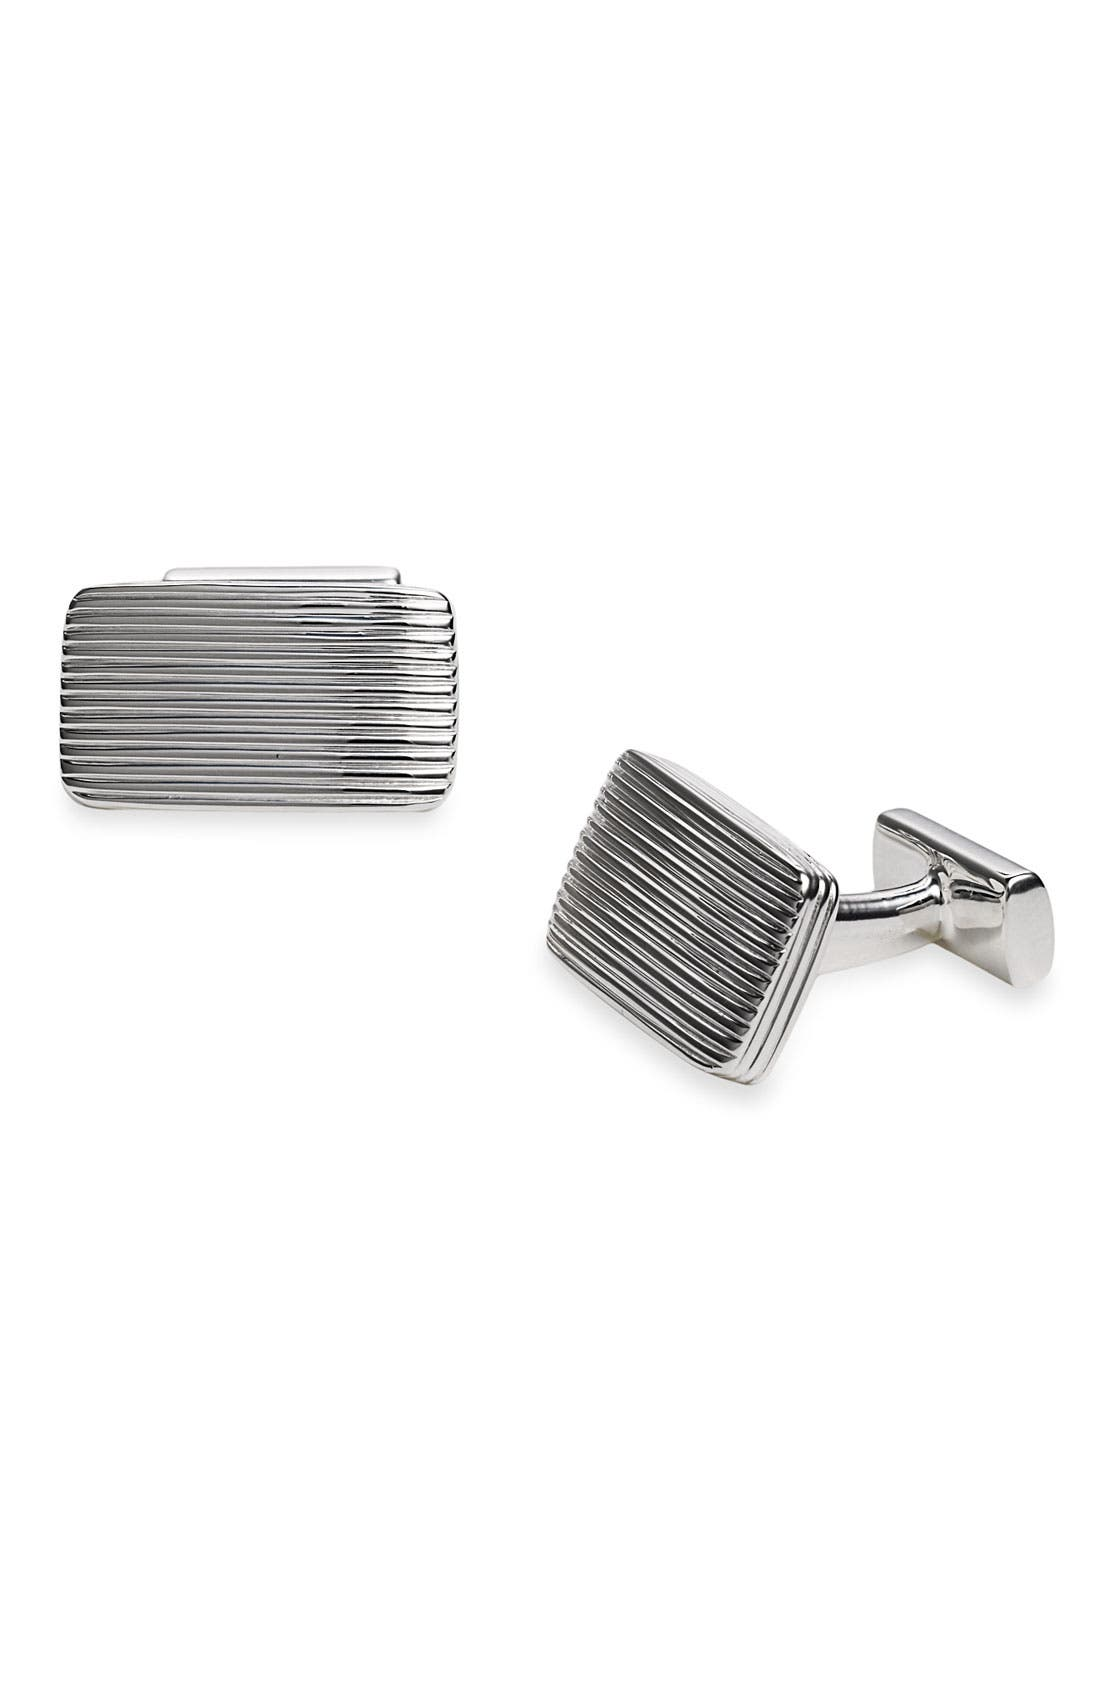 Alternate Image 1 Selected - Thomas Pink 'Georgian' Sterling Silver Cuff Links